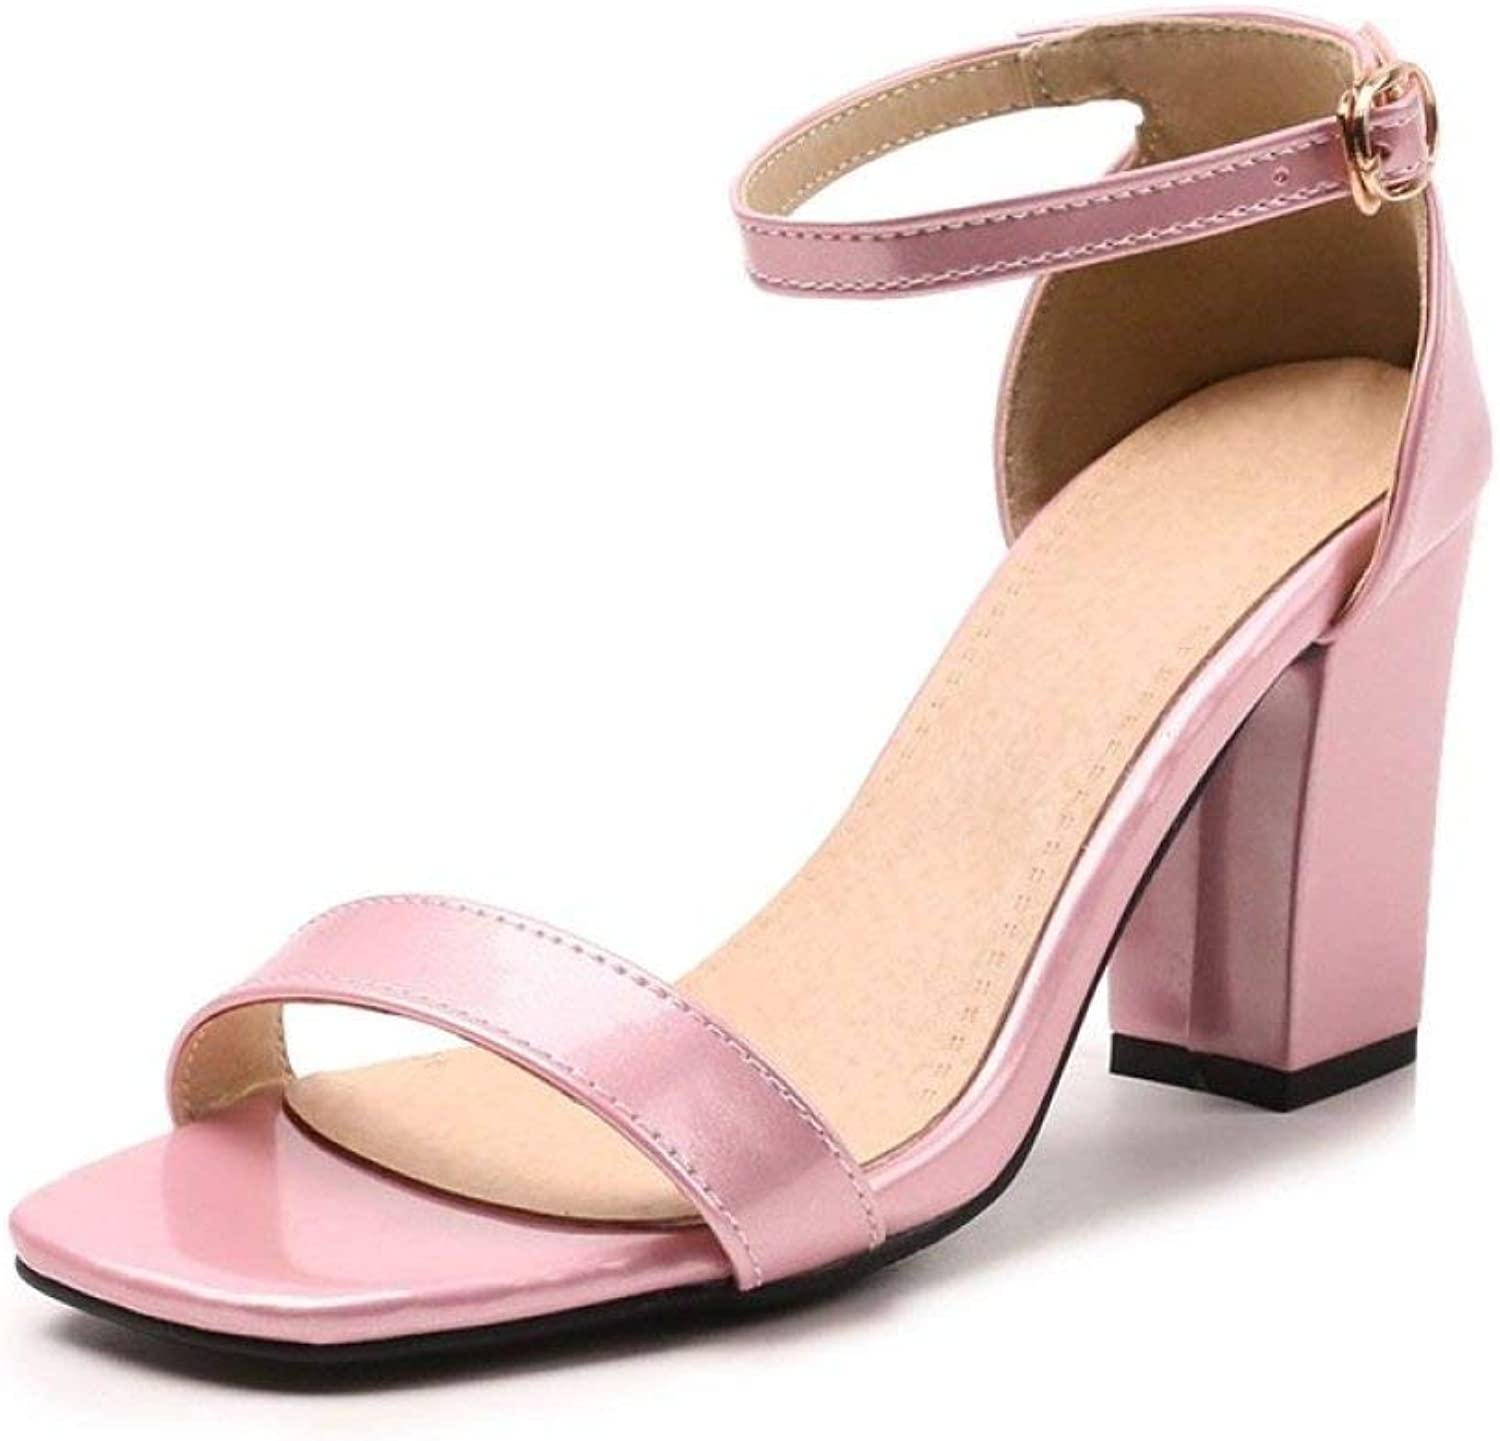 JOYBI Women Fashion Open Toe Sandals Ankle Buckle Strap Slip On Summer Party Office Chunky Thick Heels Sandal